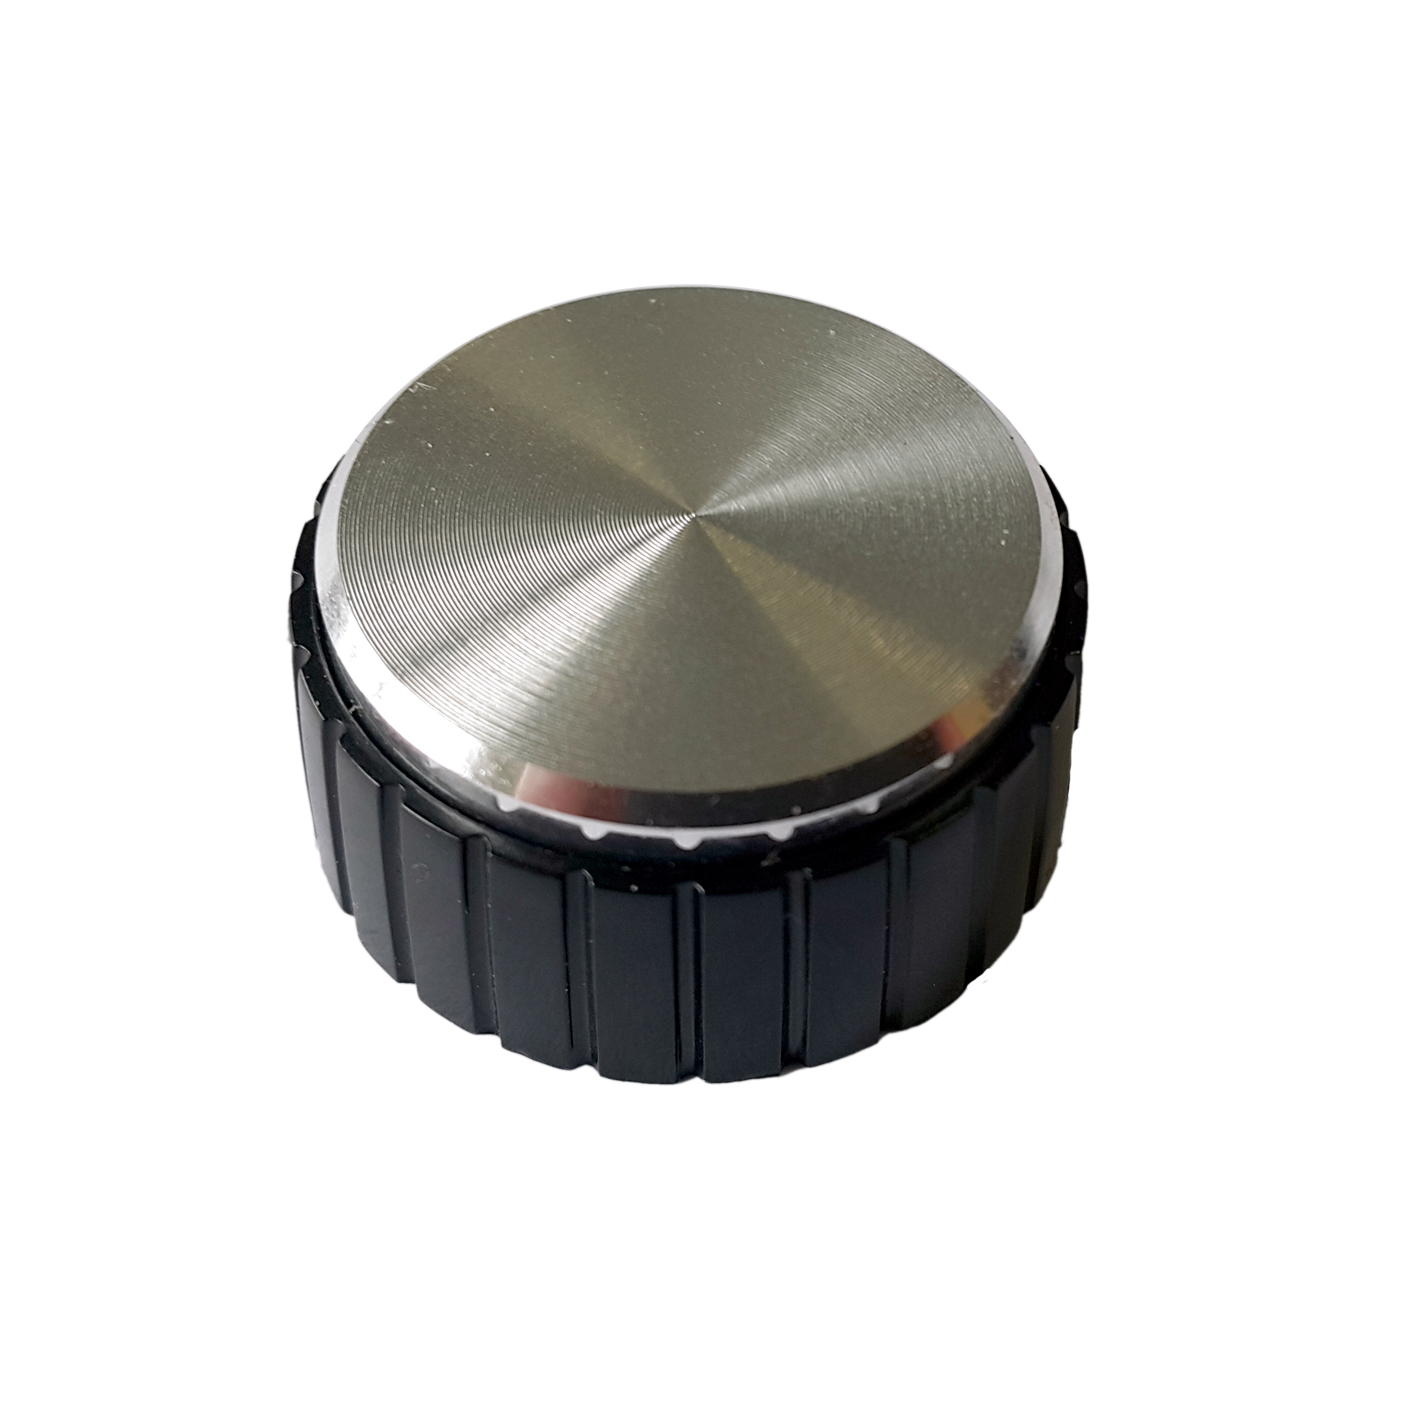 K6 Varilight Black Retro Knob Fits on Dimmers of any plate finish